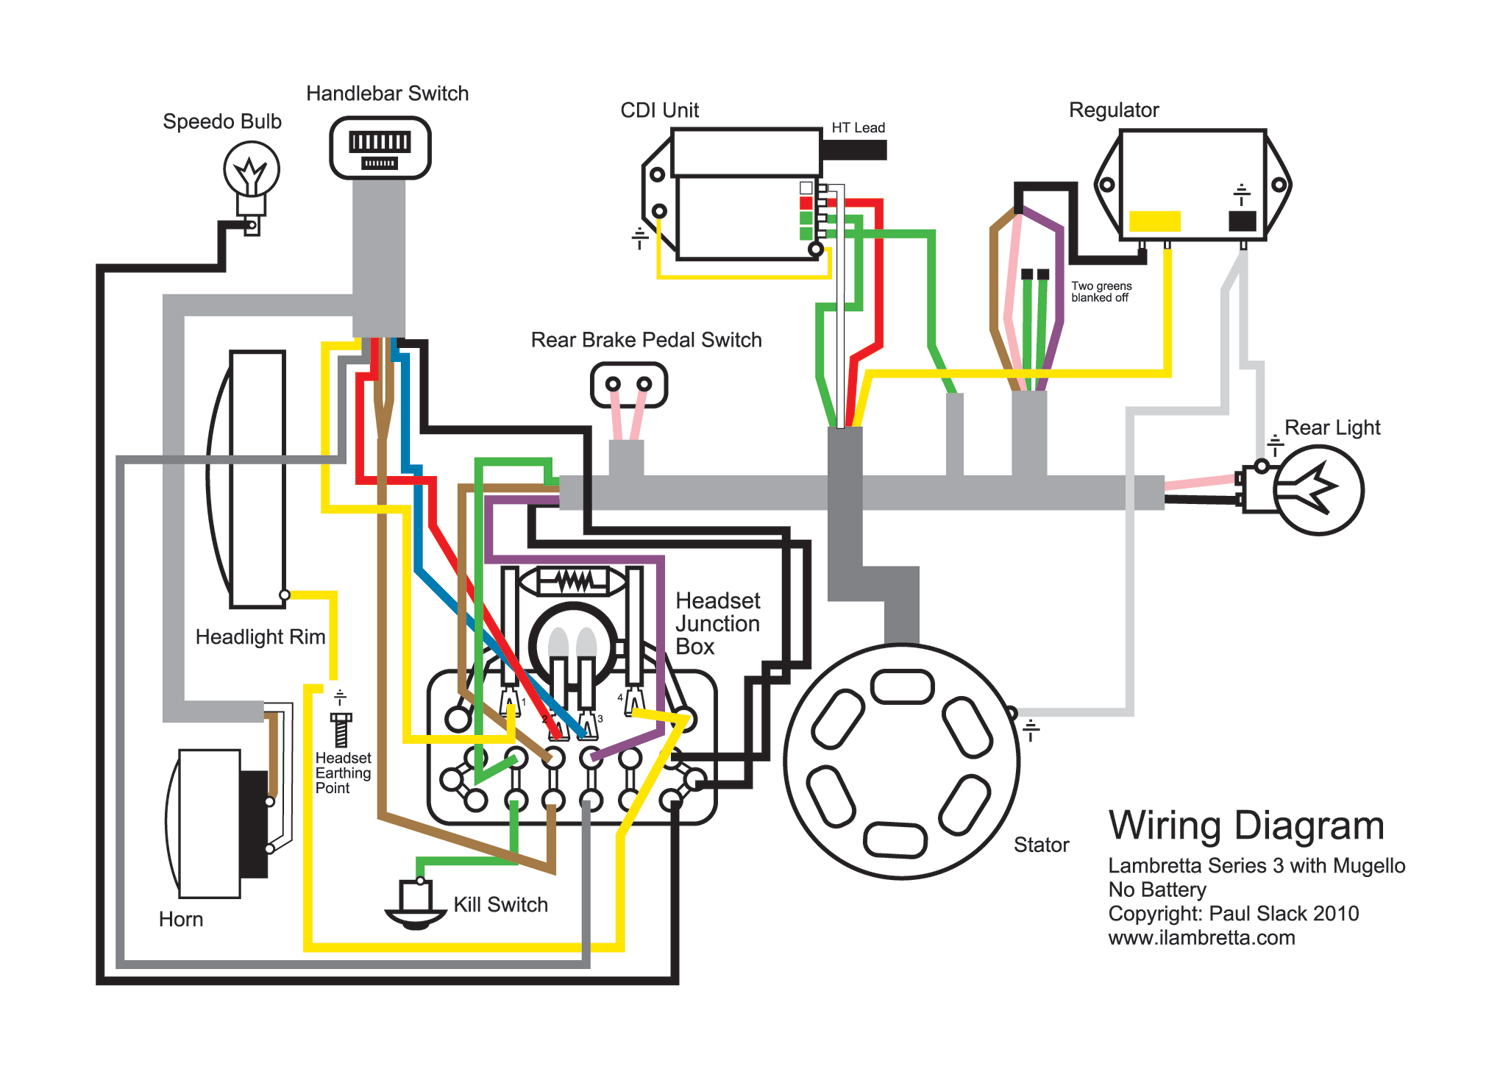 lambretta restoration wiring diagram for mugello 12 volt upgrade rh lambrettarestorations blogspot com CDI Ignition Wiring Diagram 1951 Ford Ignition Coil Wiring Diagram